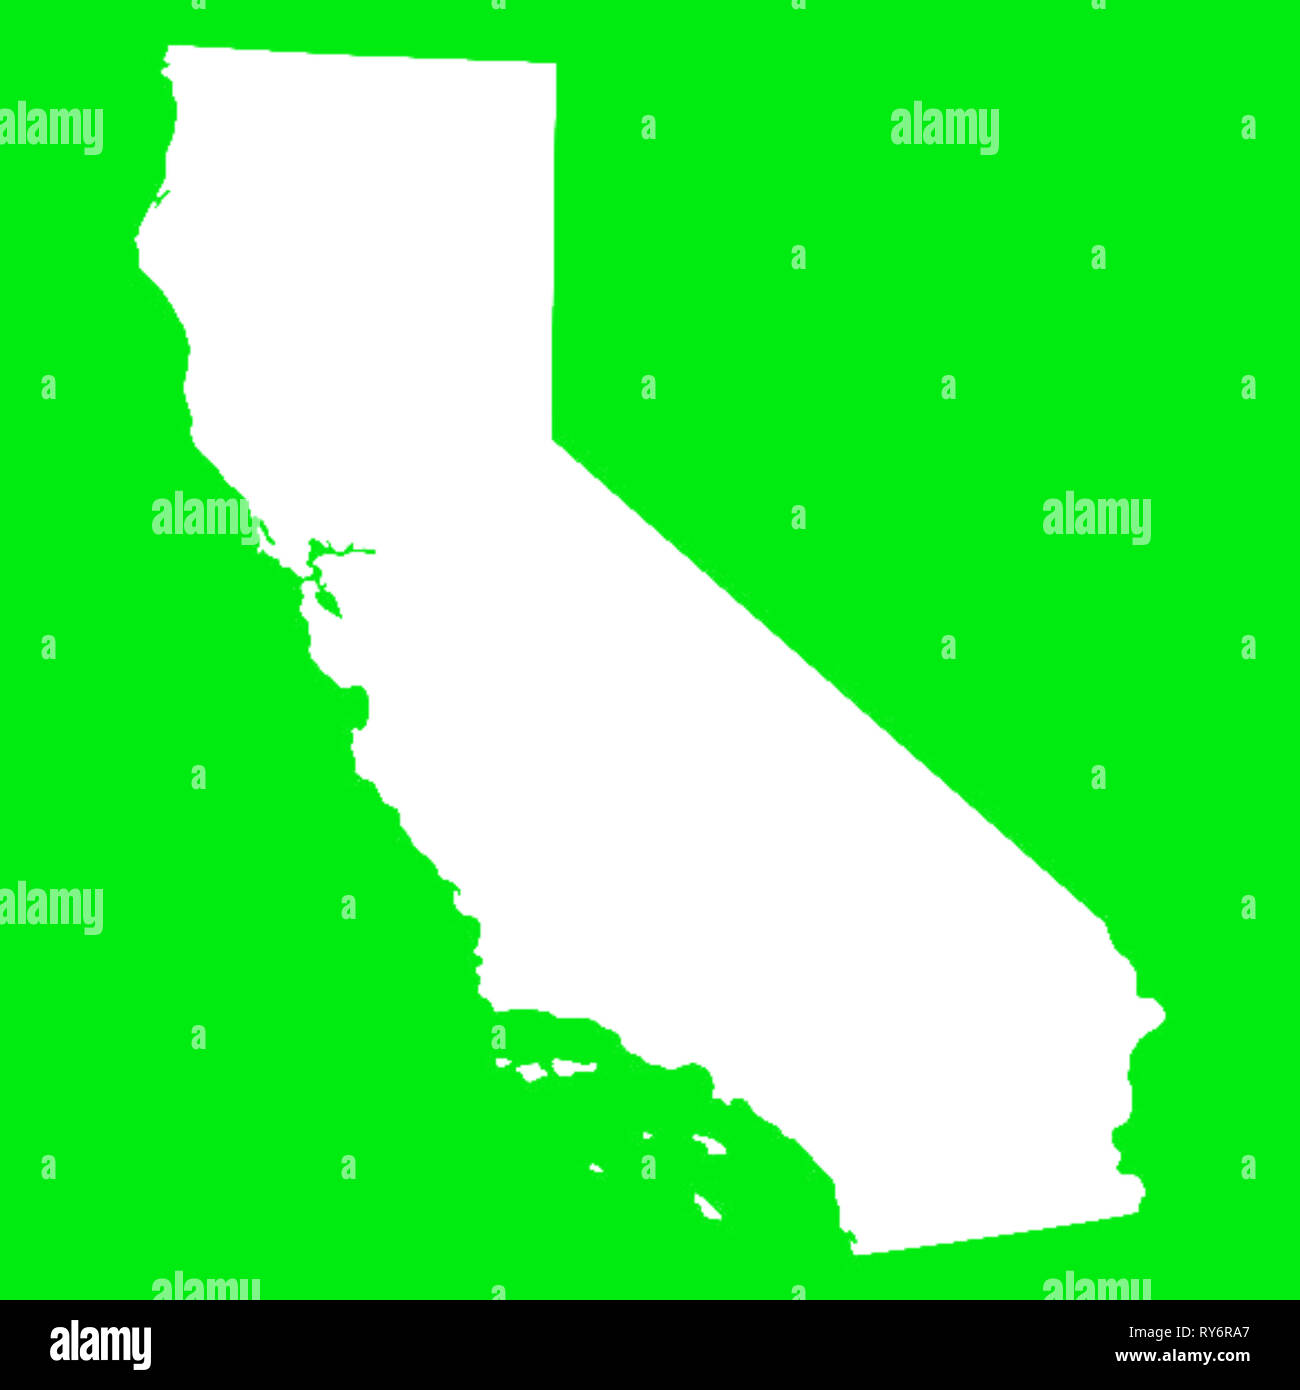 California Map Outline White on Green Screen Stock Photo: 240480527 on